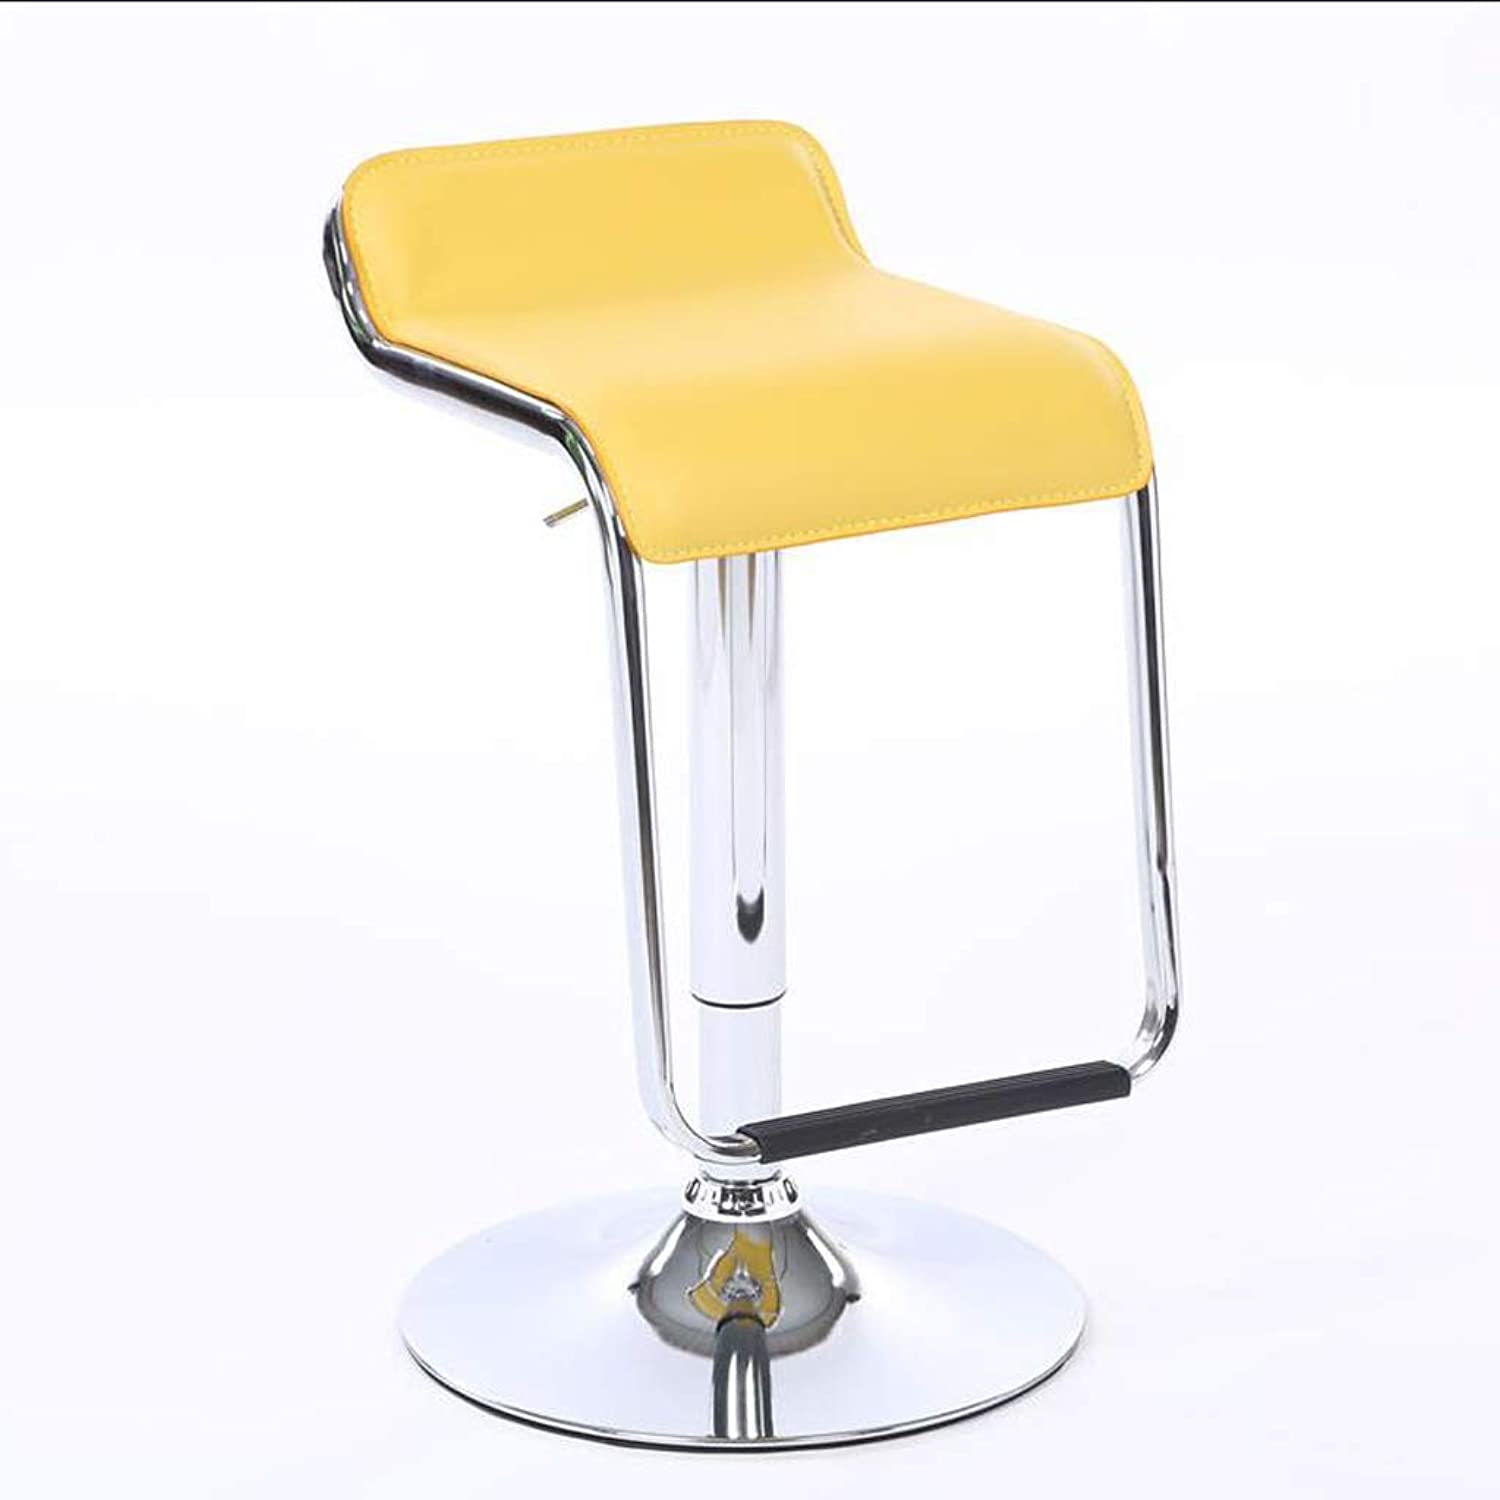 HBJP Modern Minimalist Dining Chair, Chair Lift, redating Stool, Restaurant Chair, Hotel Company Counter Chair, Multi-color Optional bar Chair (color   Yellow)